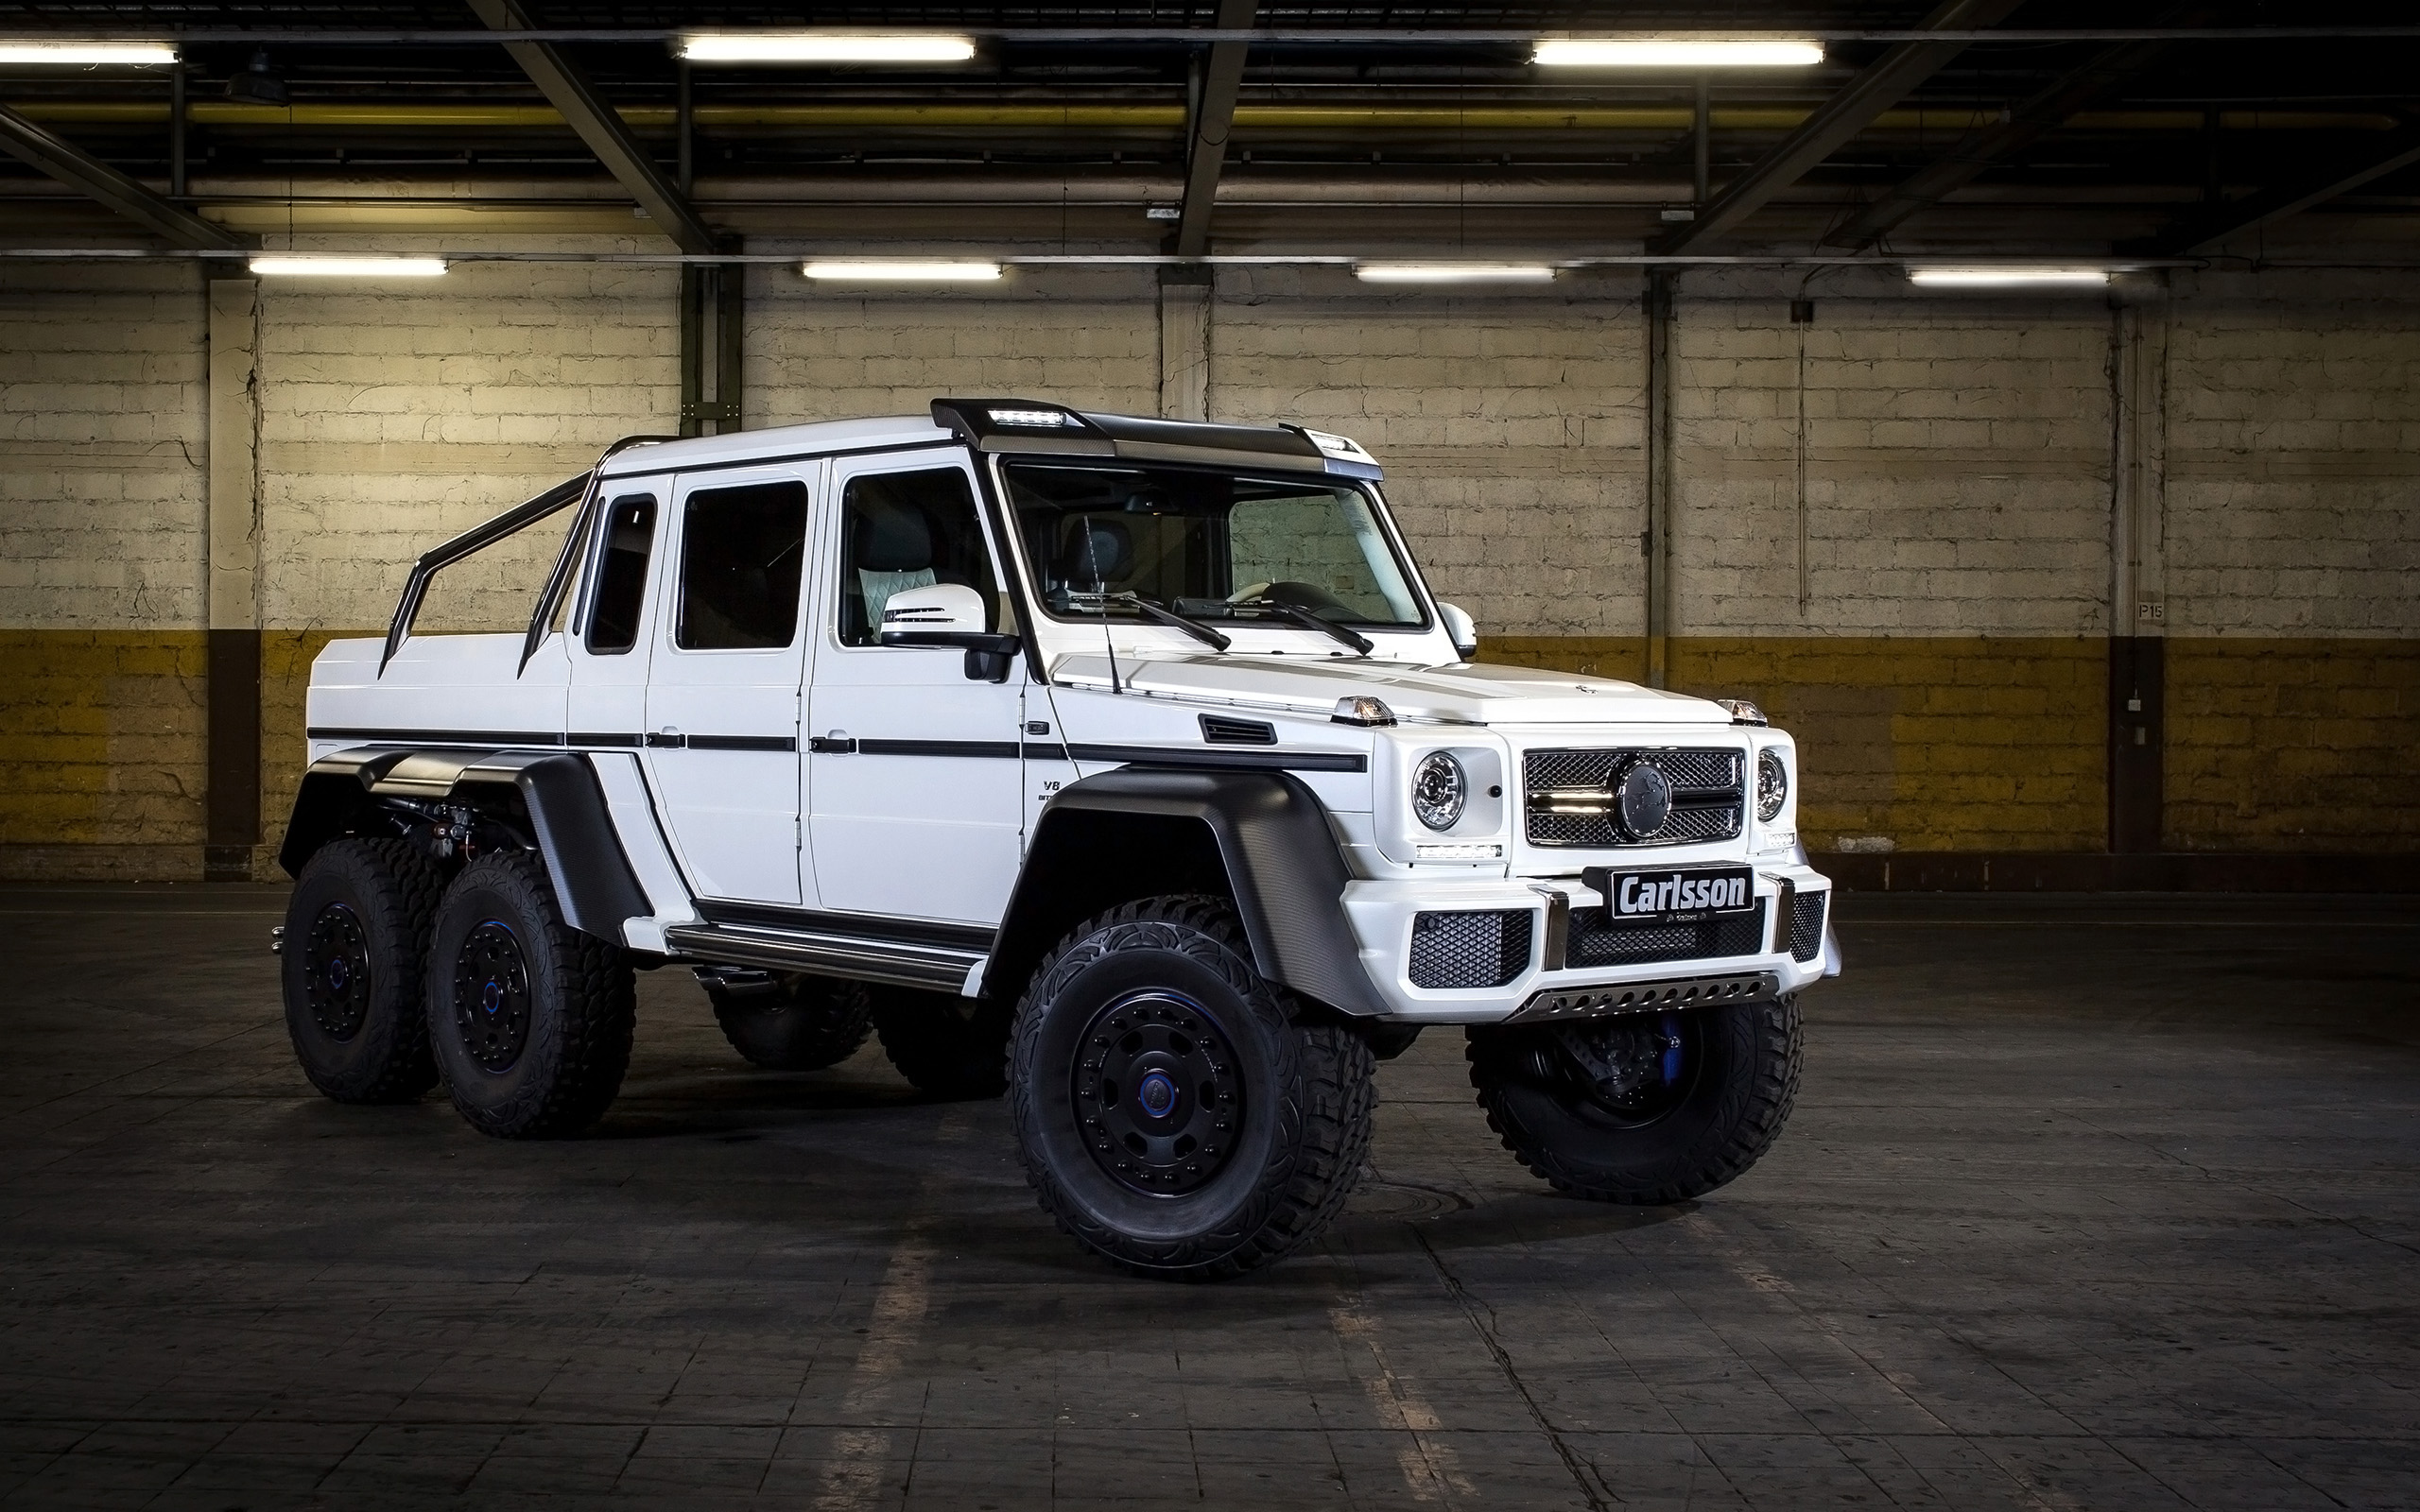 2014 Carlsson Mercedes Benz Cg63 Amg 6x6 Wallpaper Hd